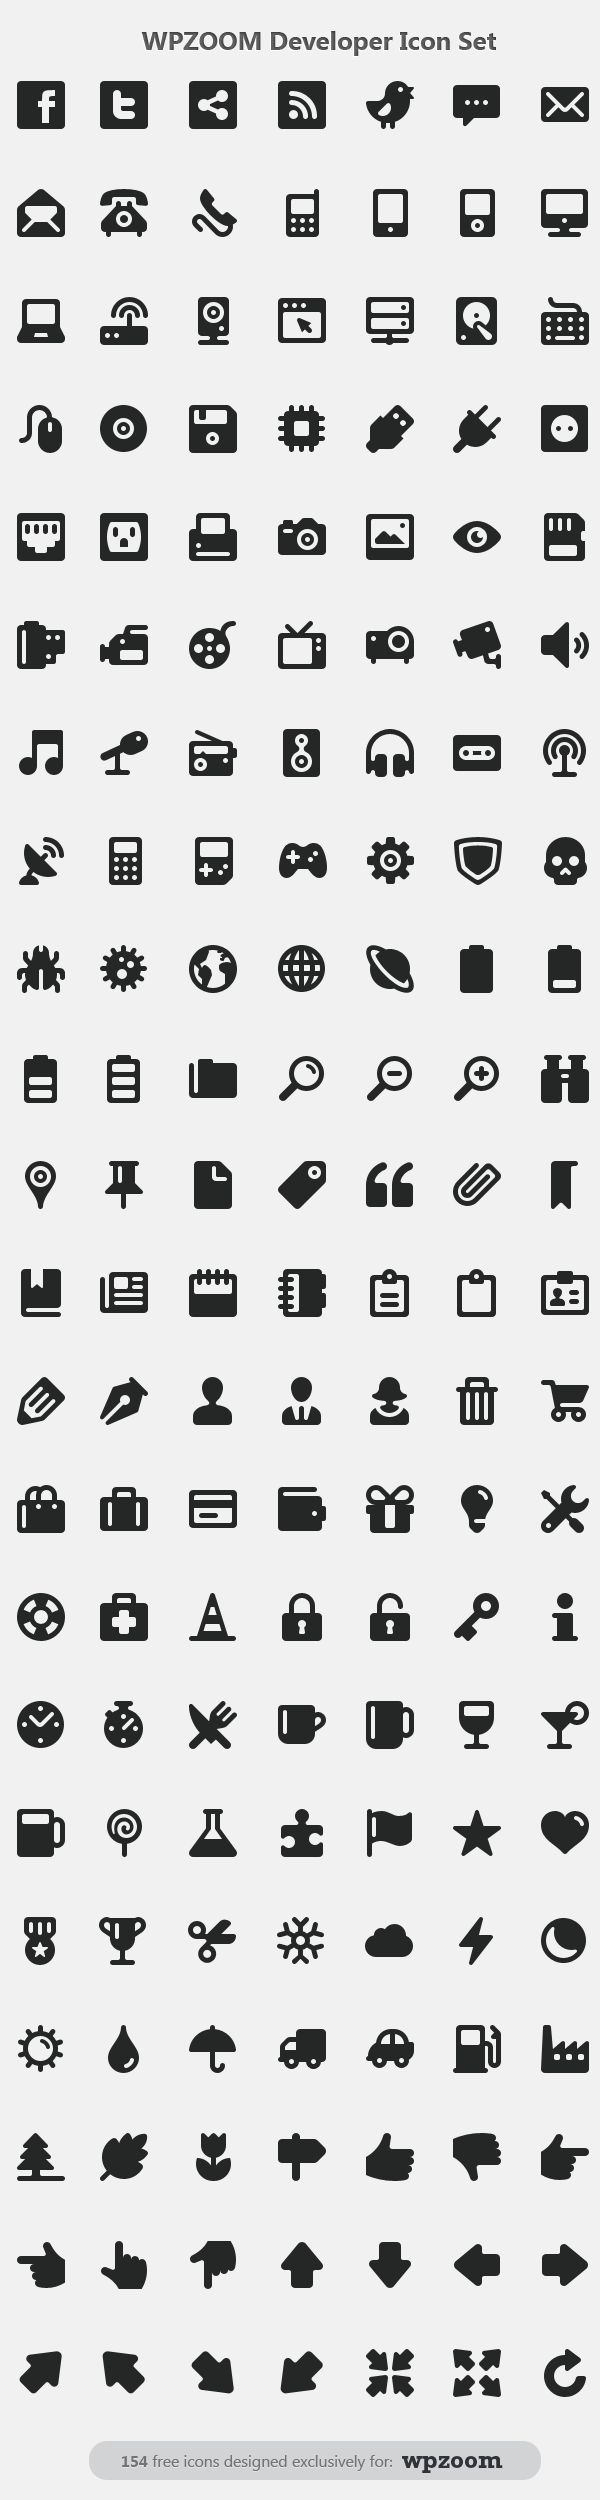 WP Zoom 154 icons set :)